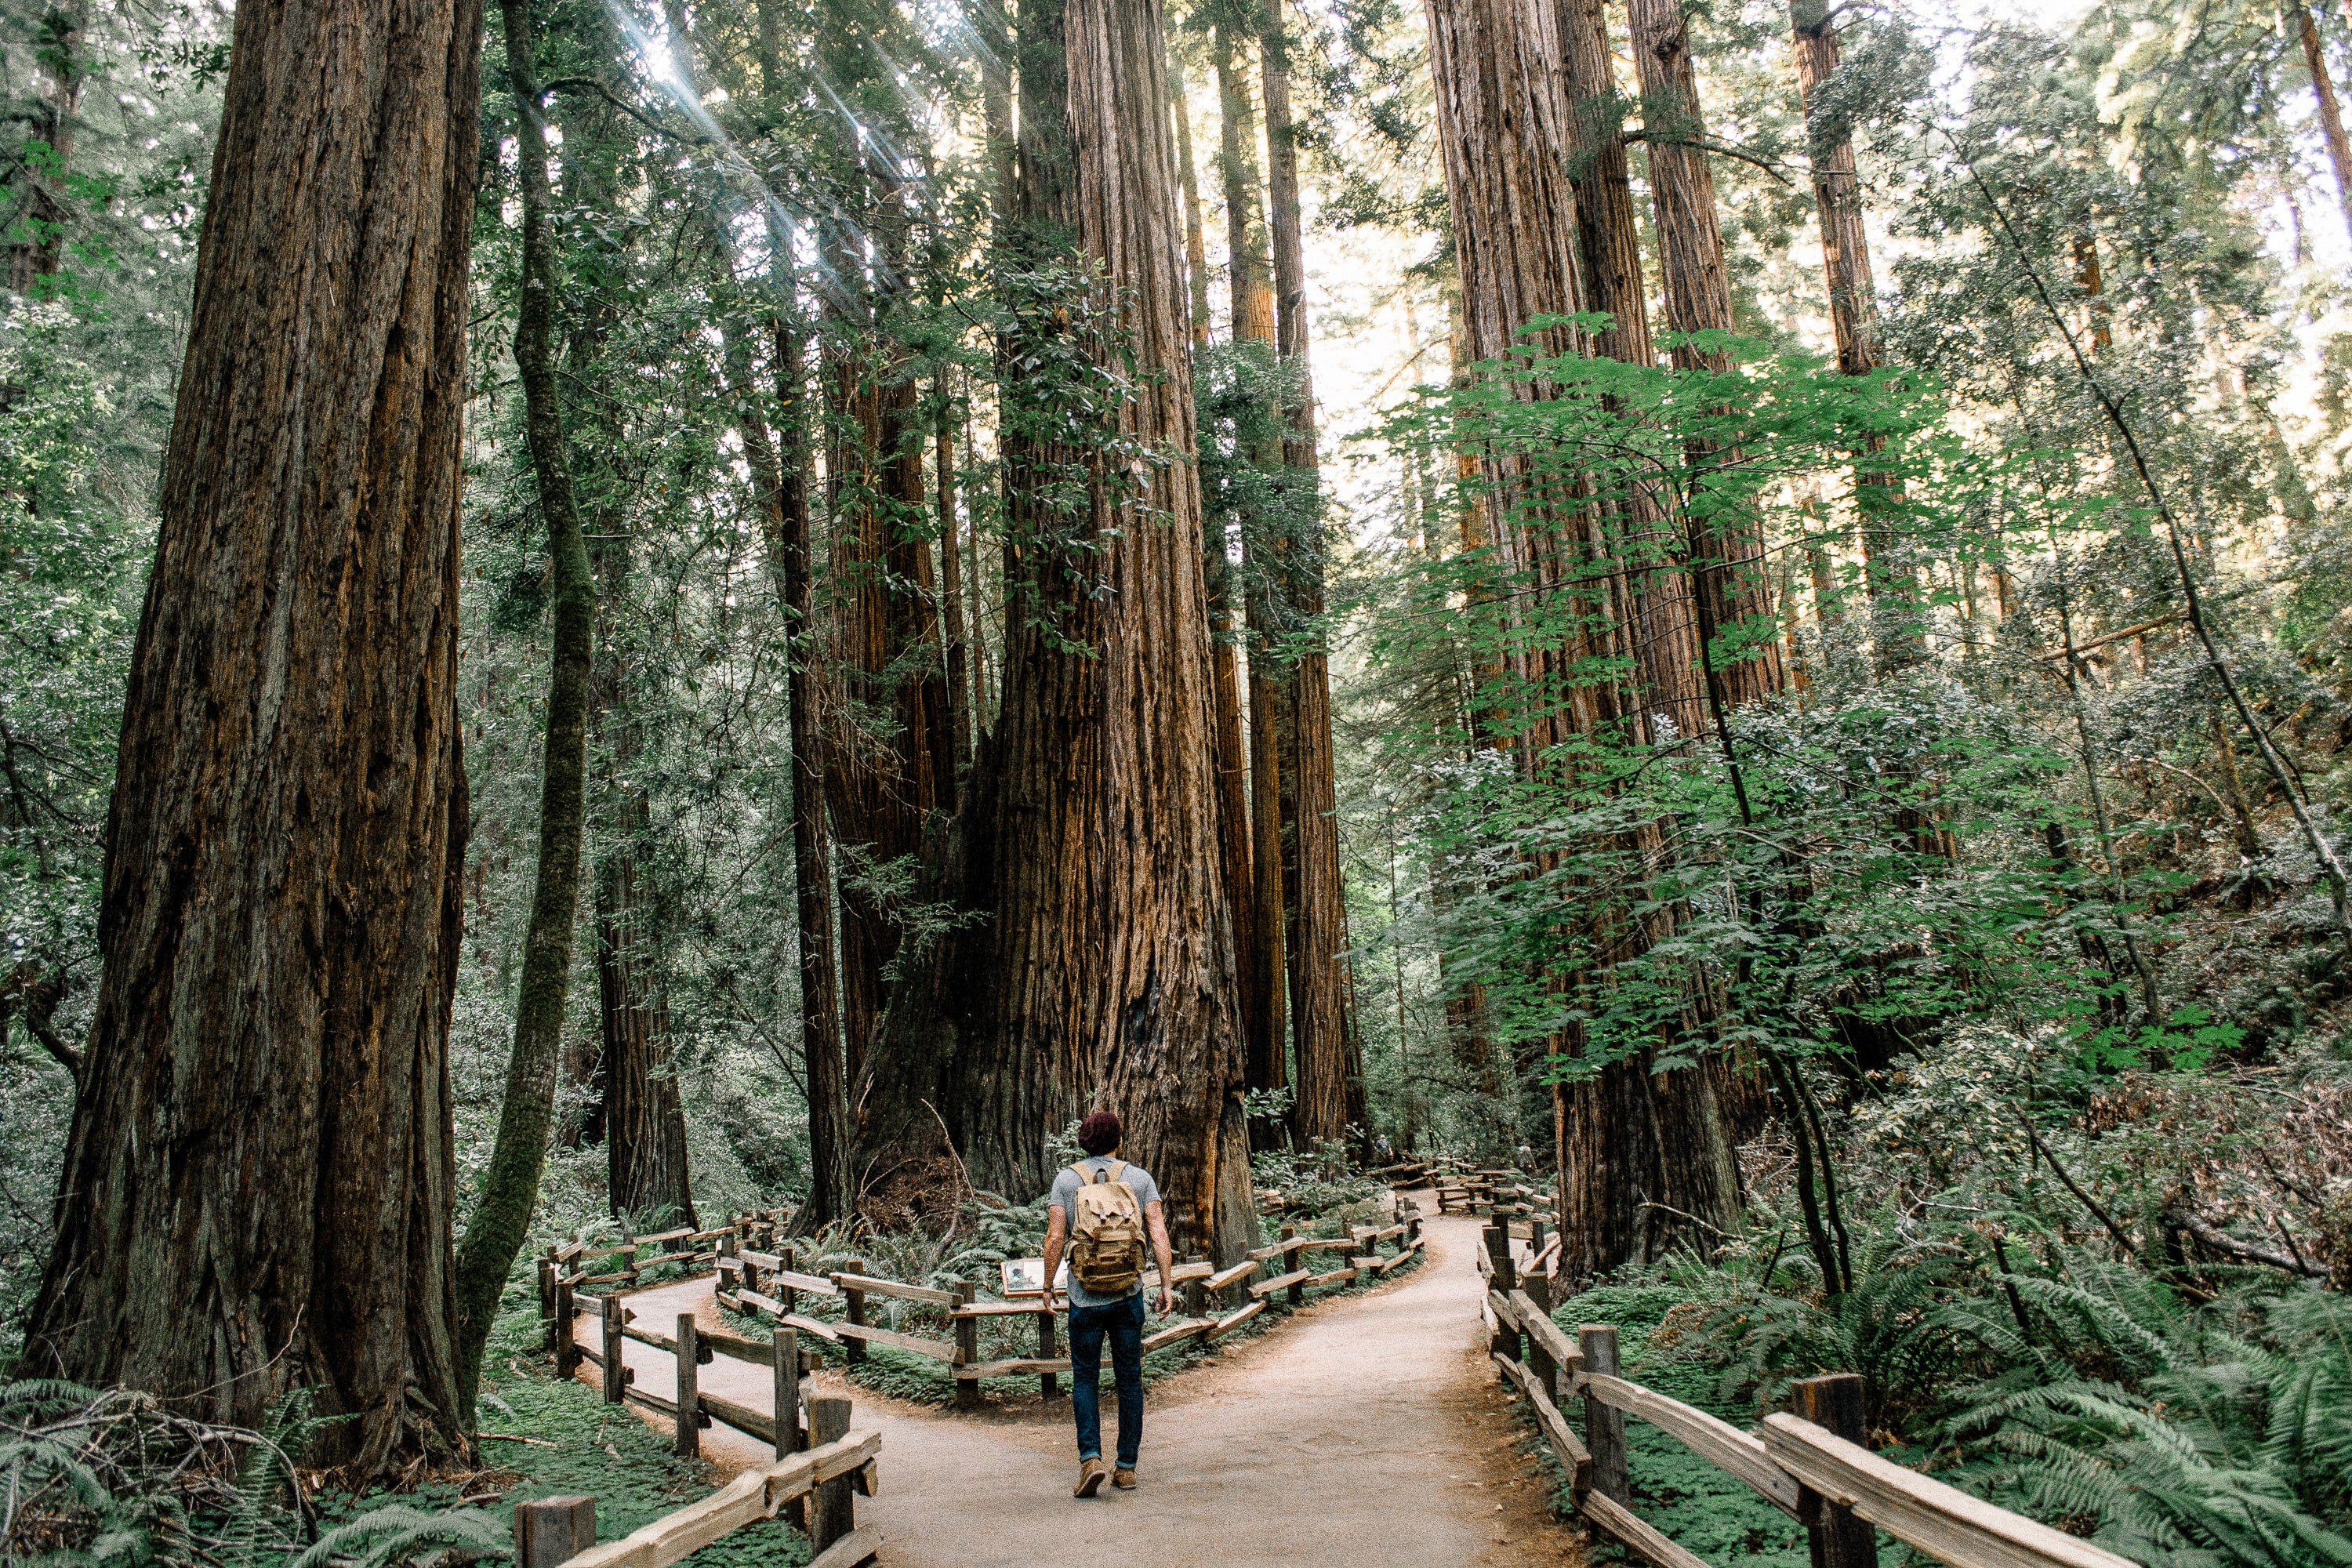 A man wearing jeans and a backpack walking down a trail through the Muir Woods